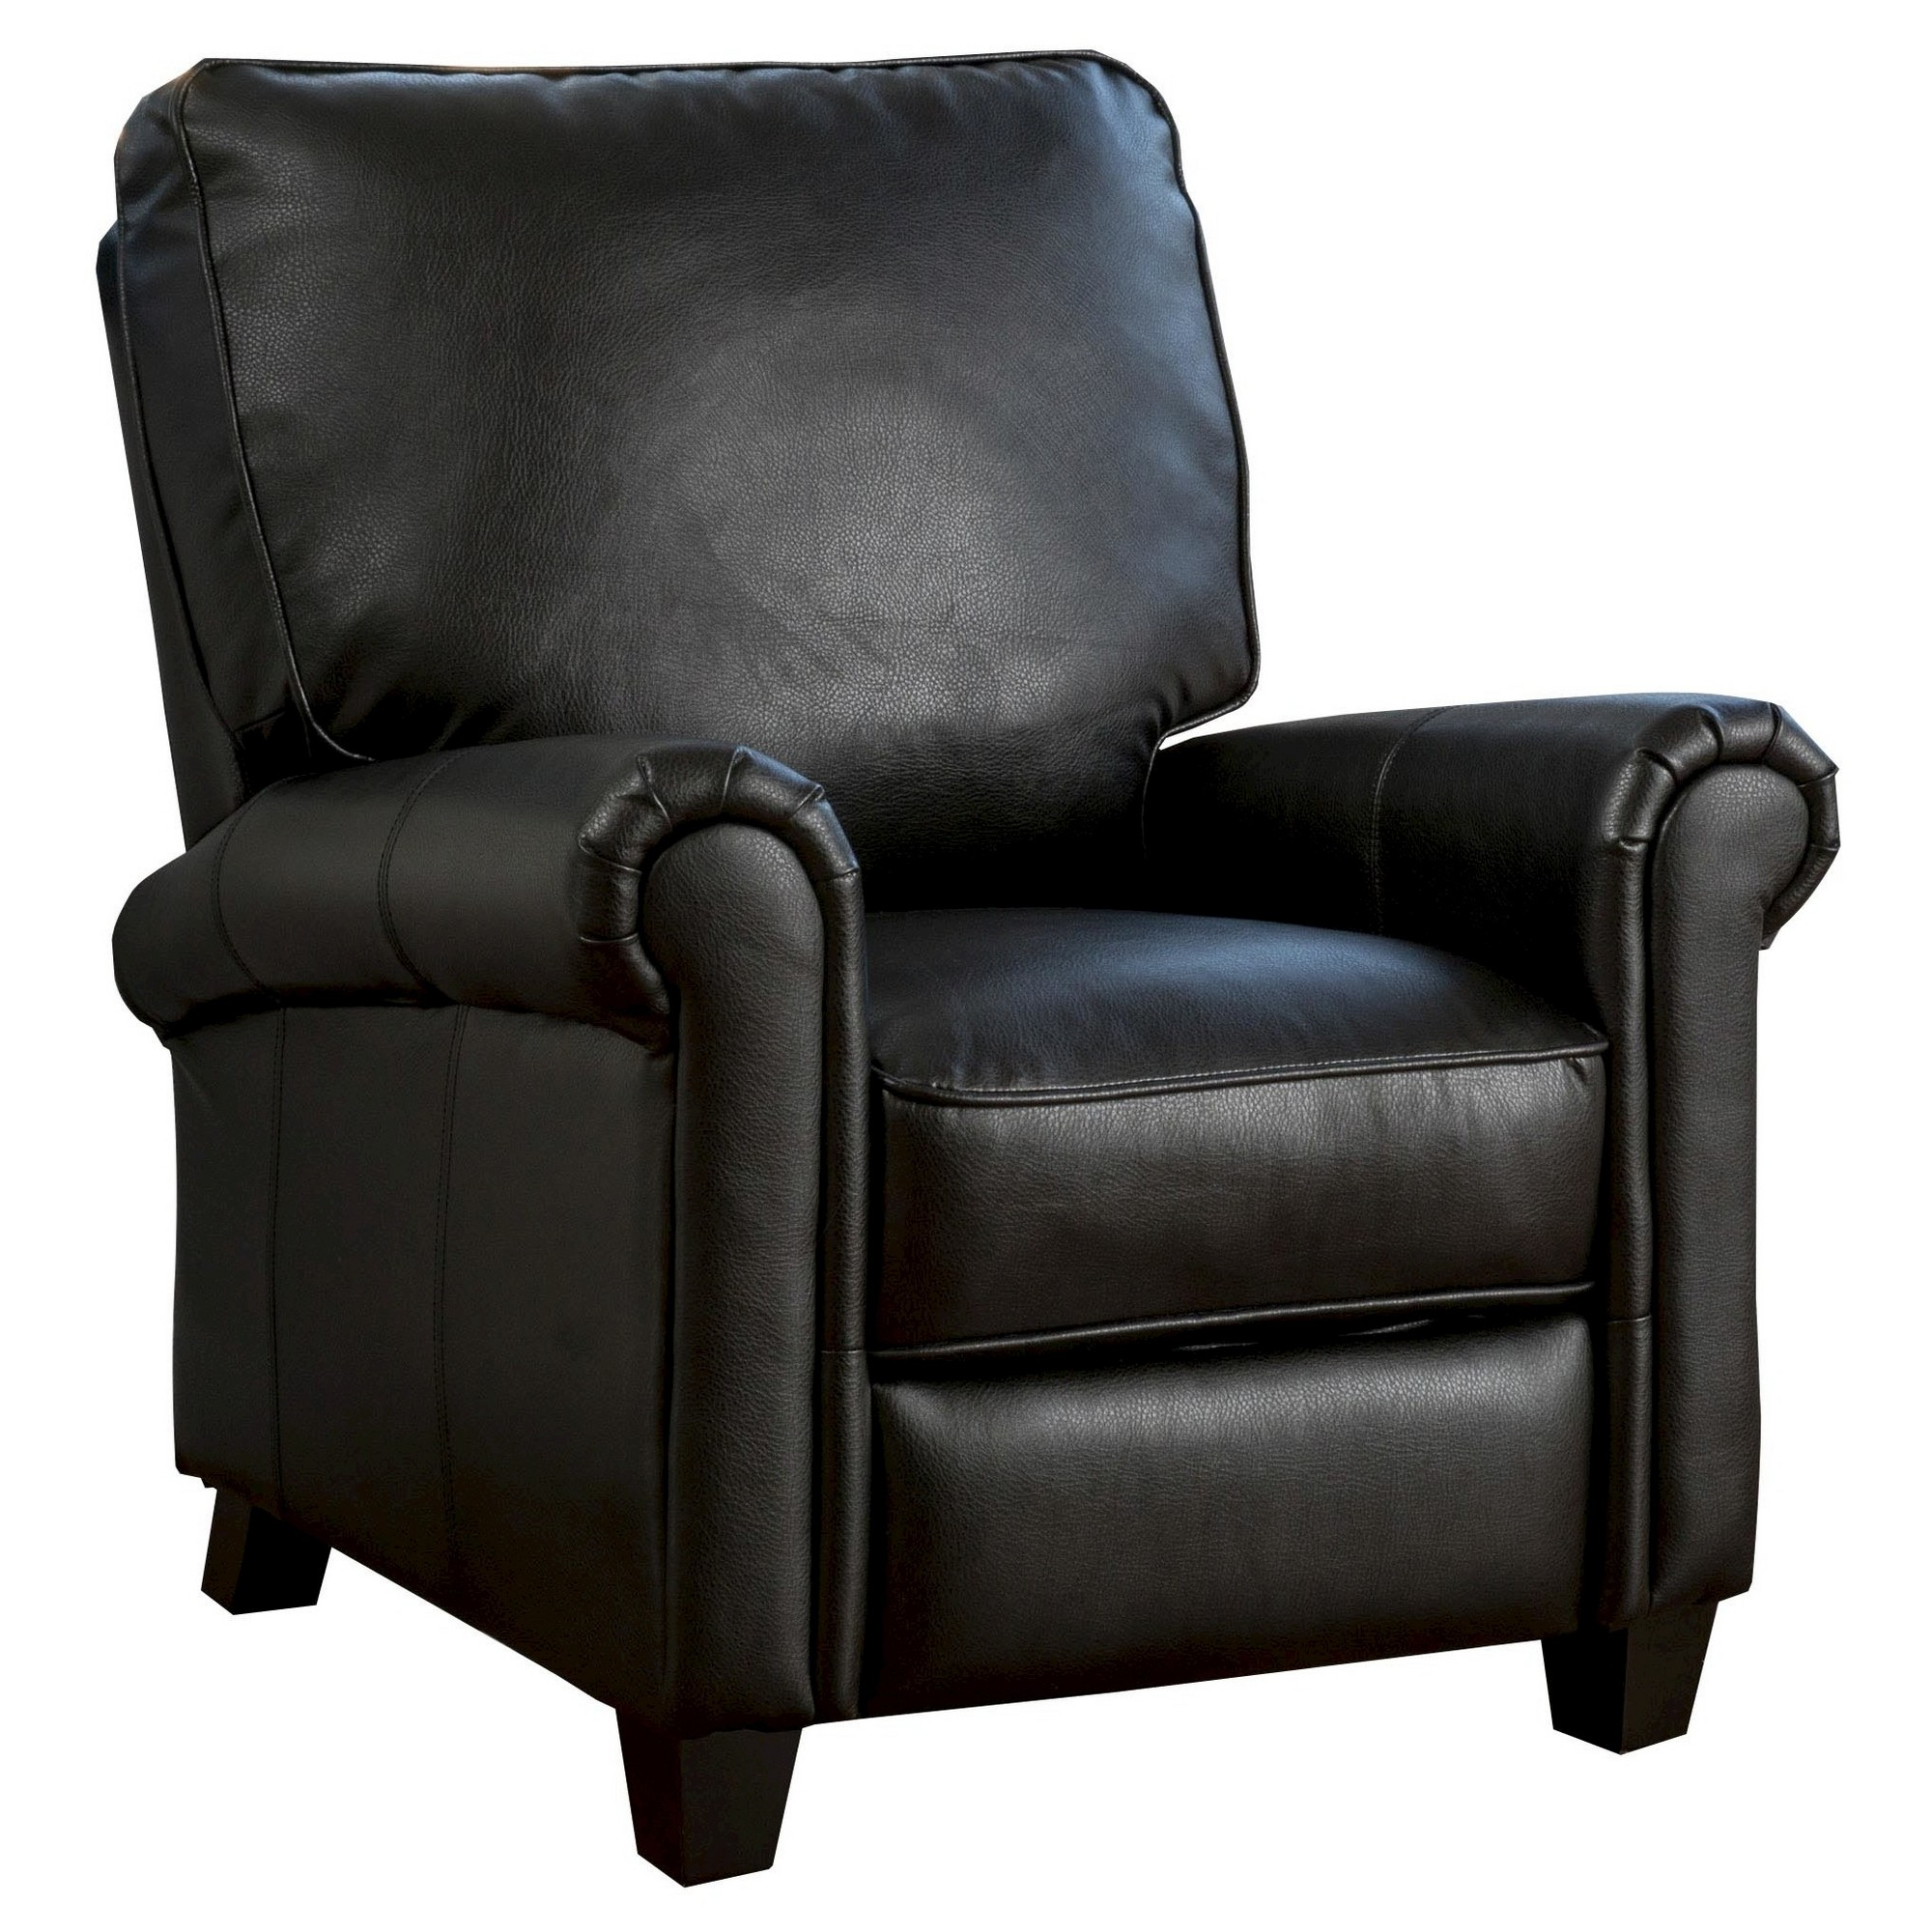 Dallon PU Leather Recliner Club Chair   Black   Christopher Knight Home